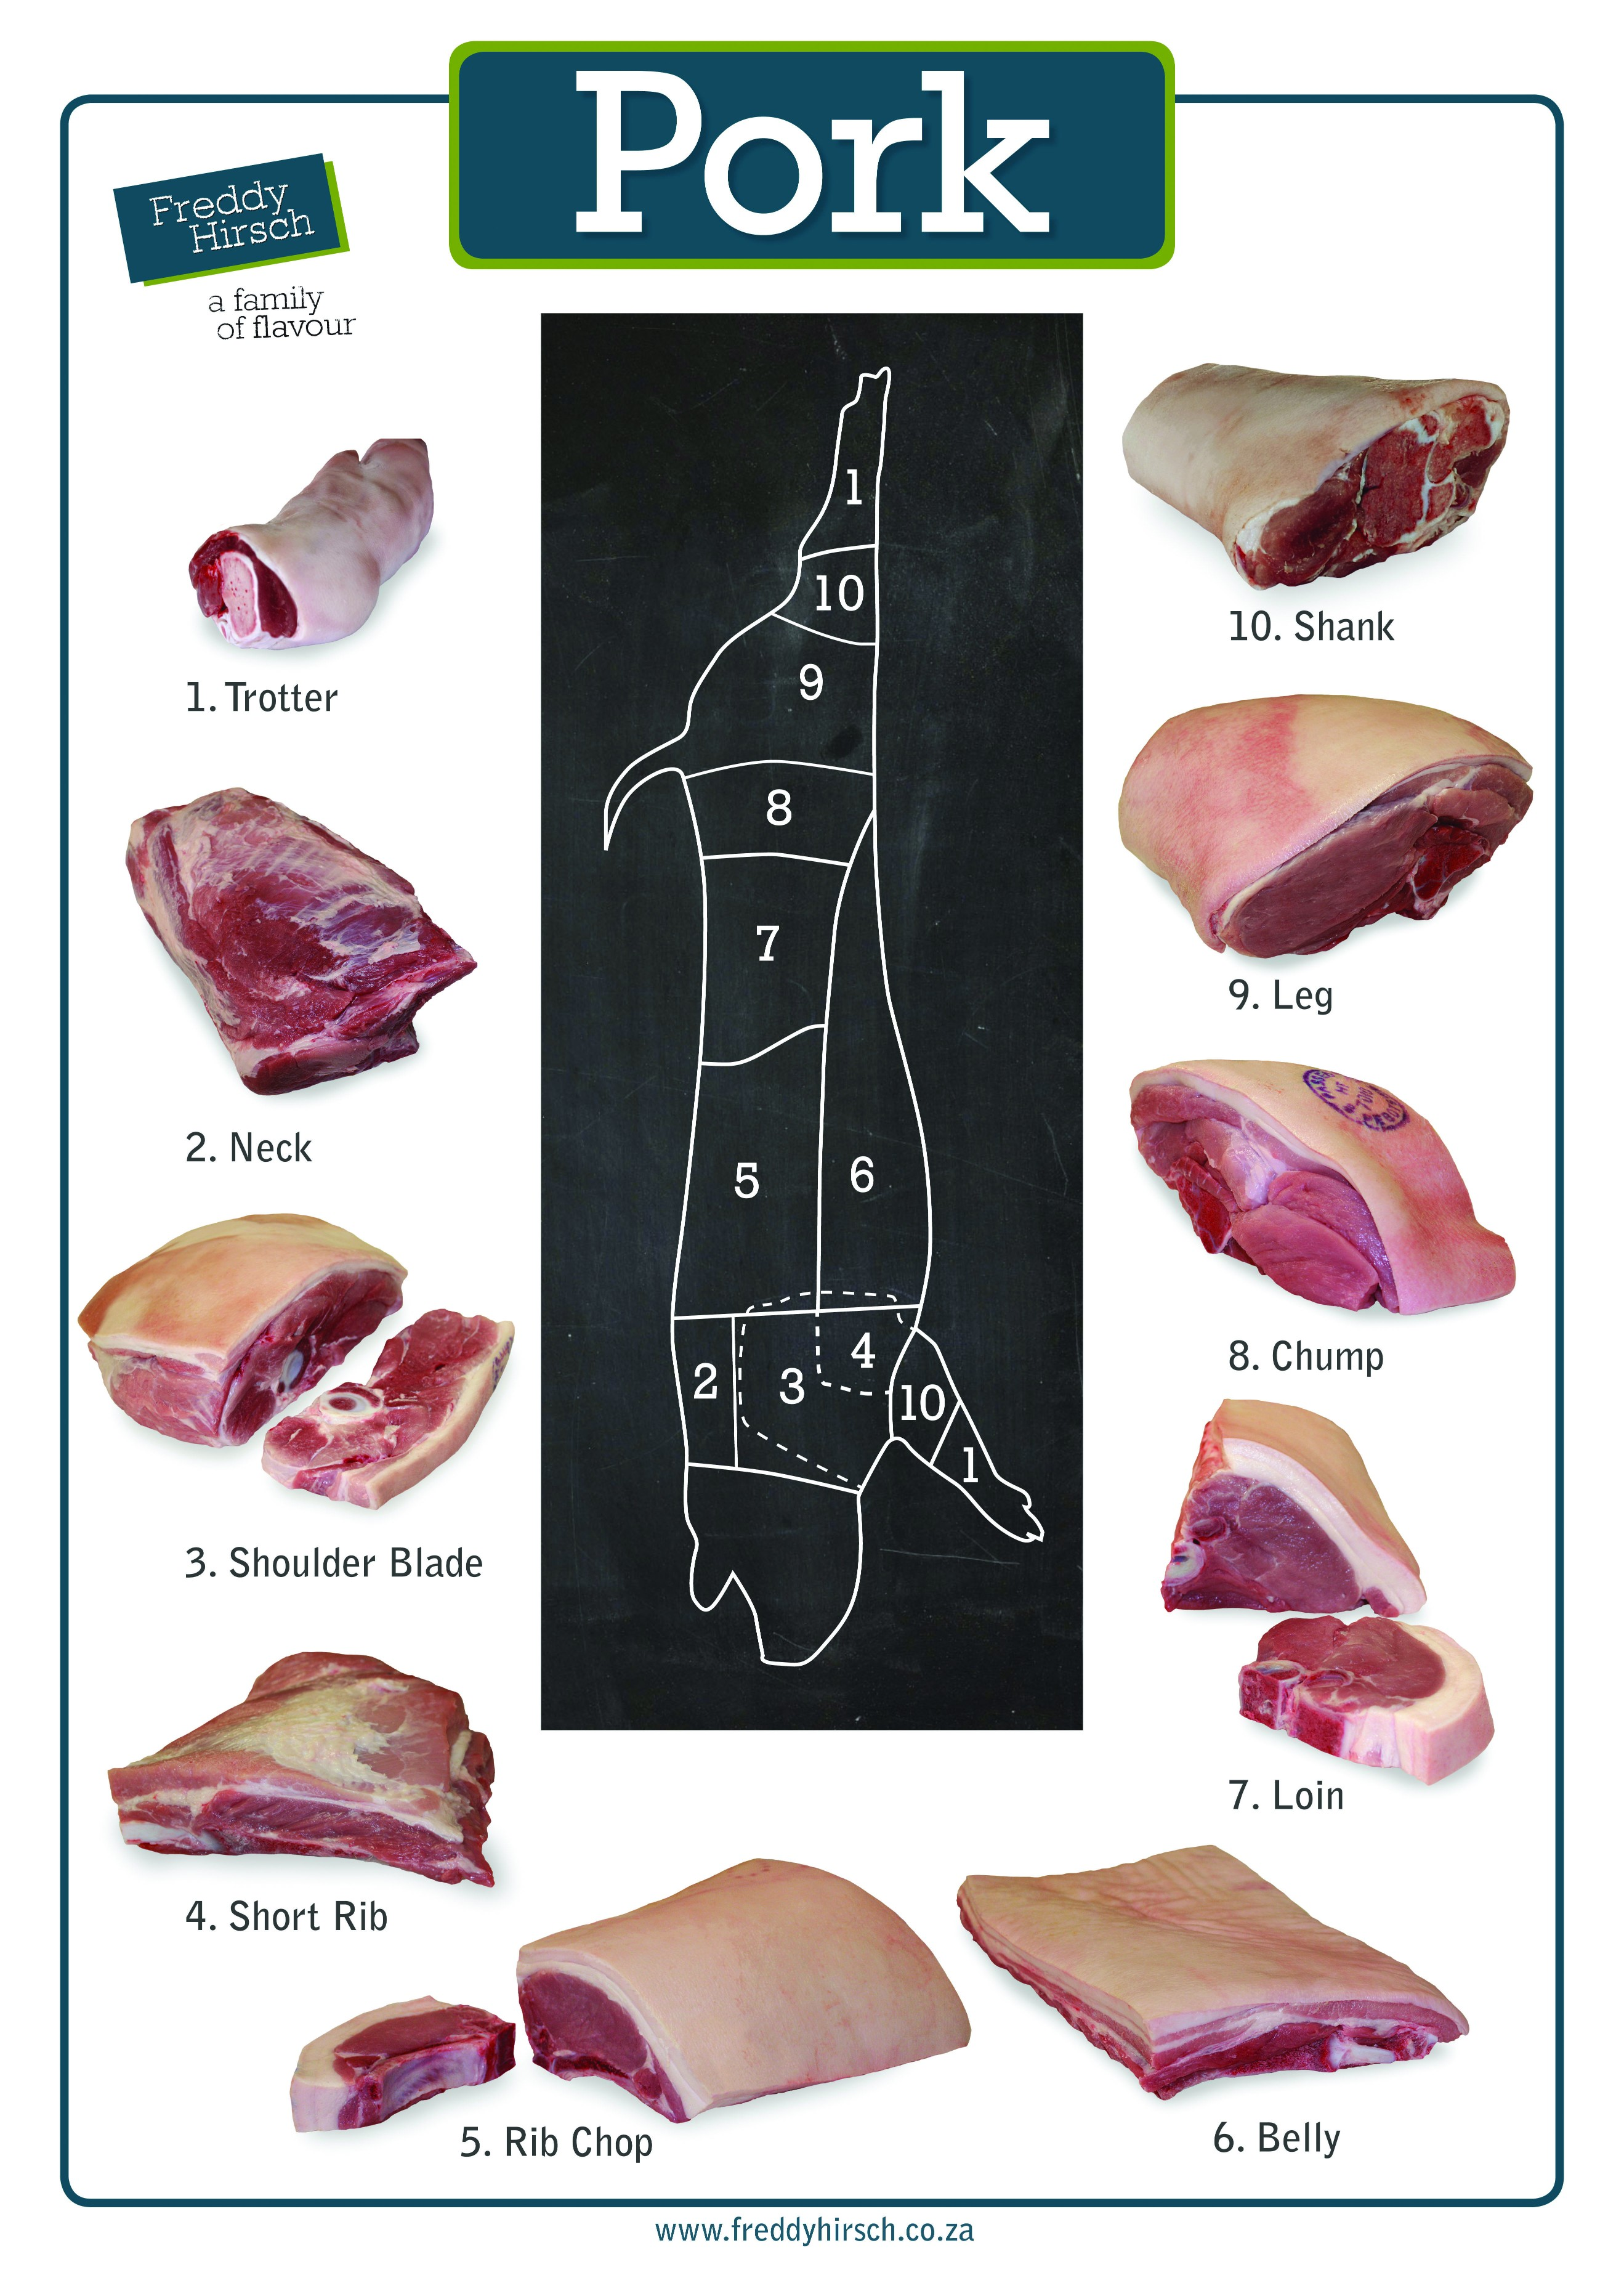 Types of pork cuts